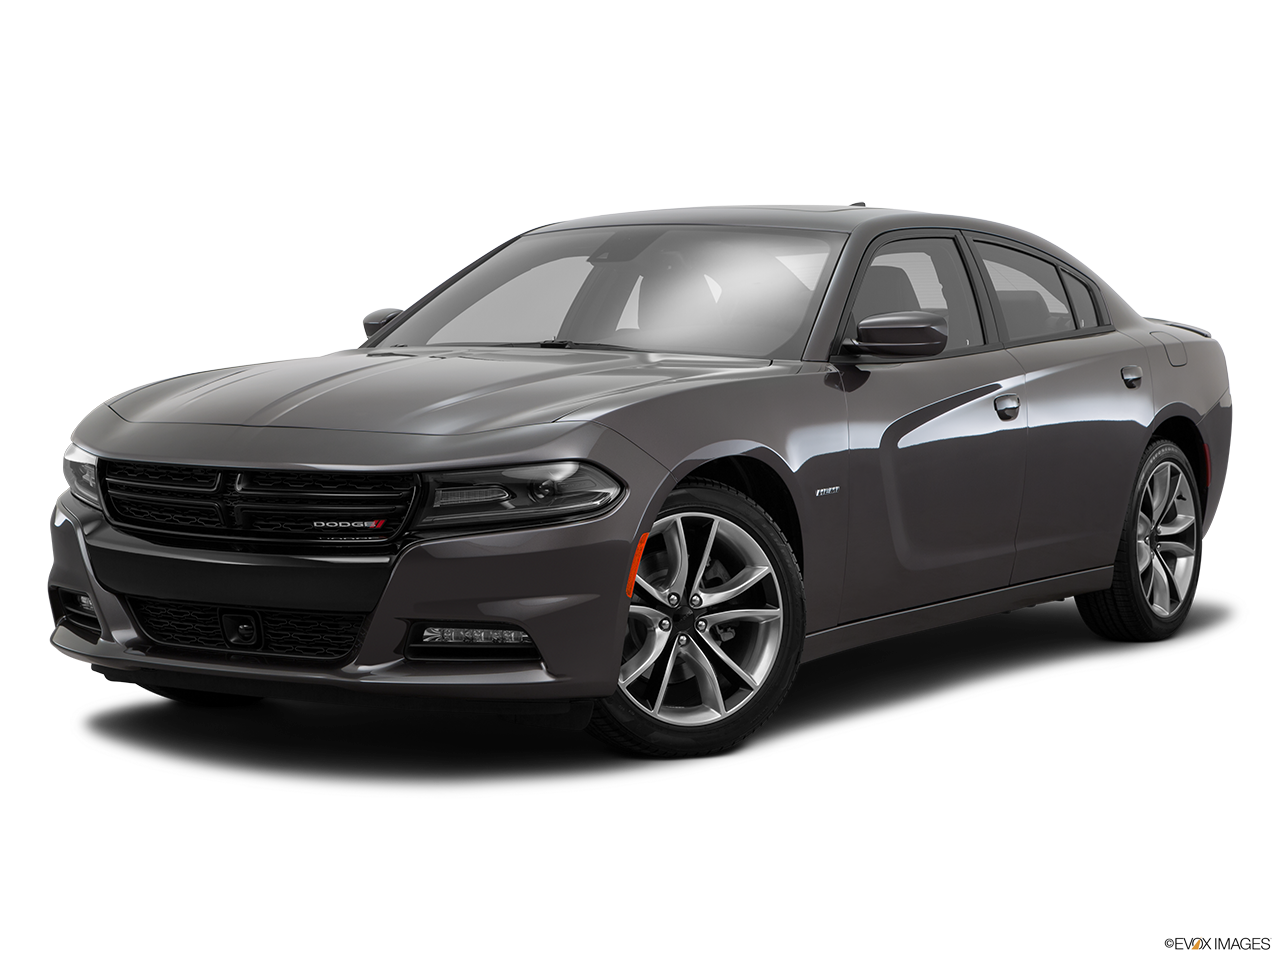 Test Drive A 2015 Dodge Charger at Huntington Beach Chrysler Dodge Jeep Ram in Huntington Beach